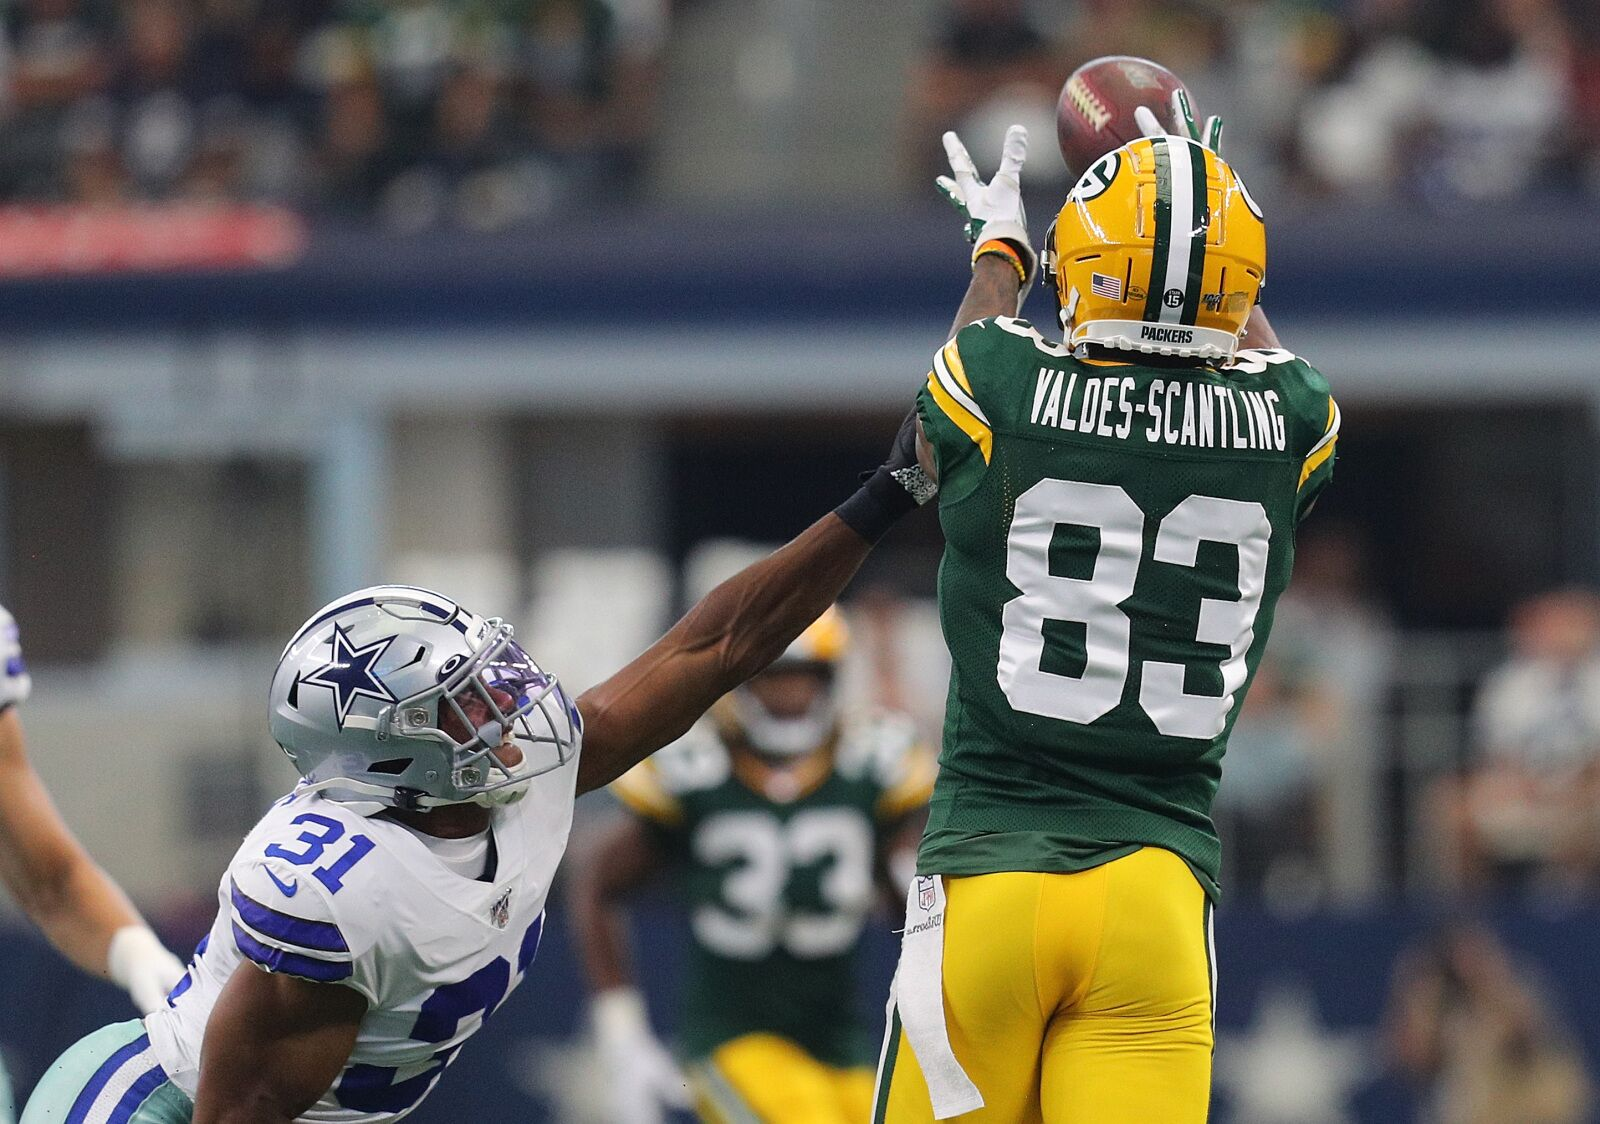 Packers roundup: Players, matchups to watch vs. Lions